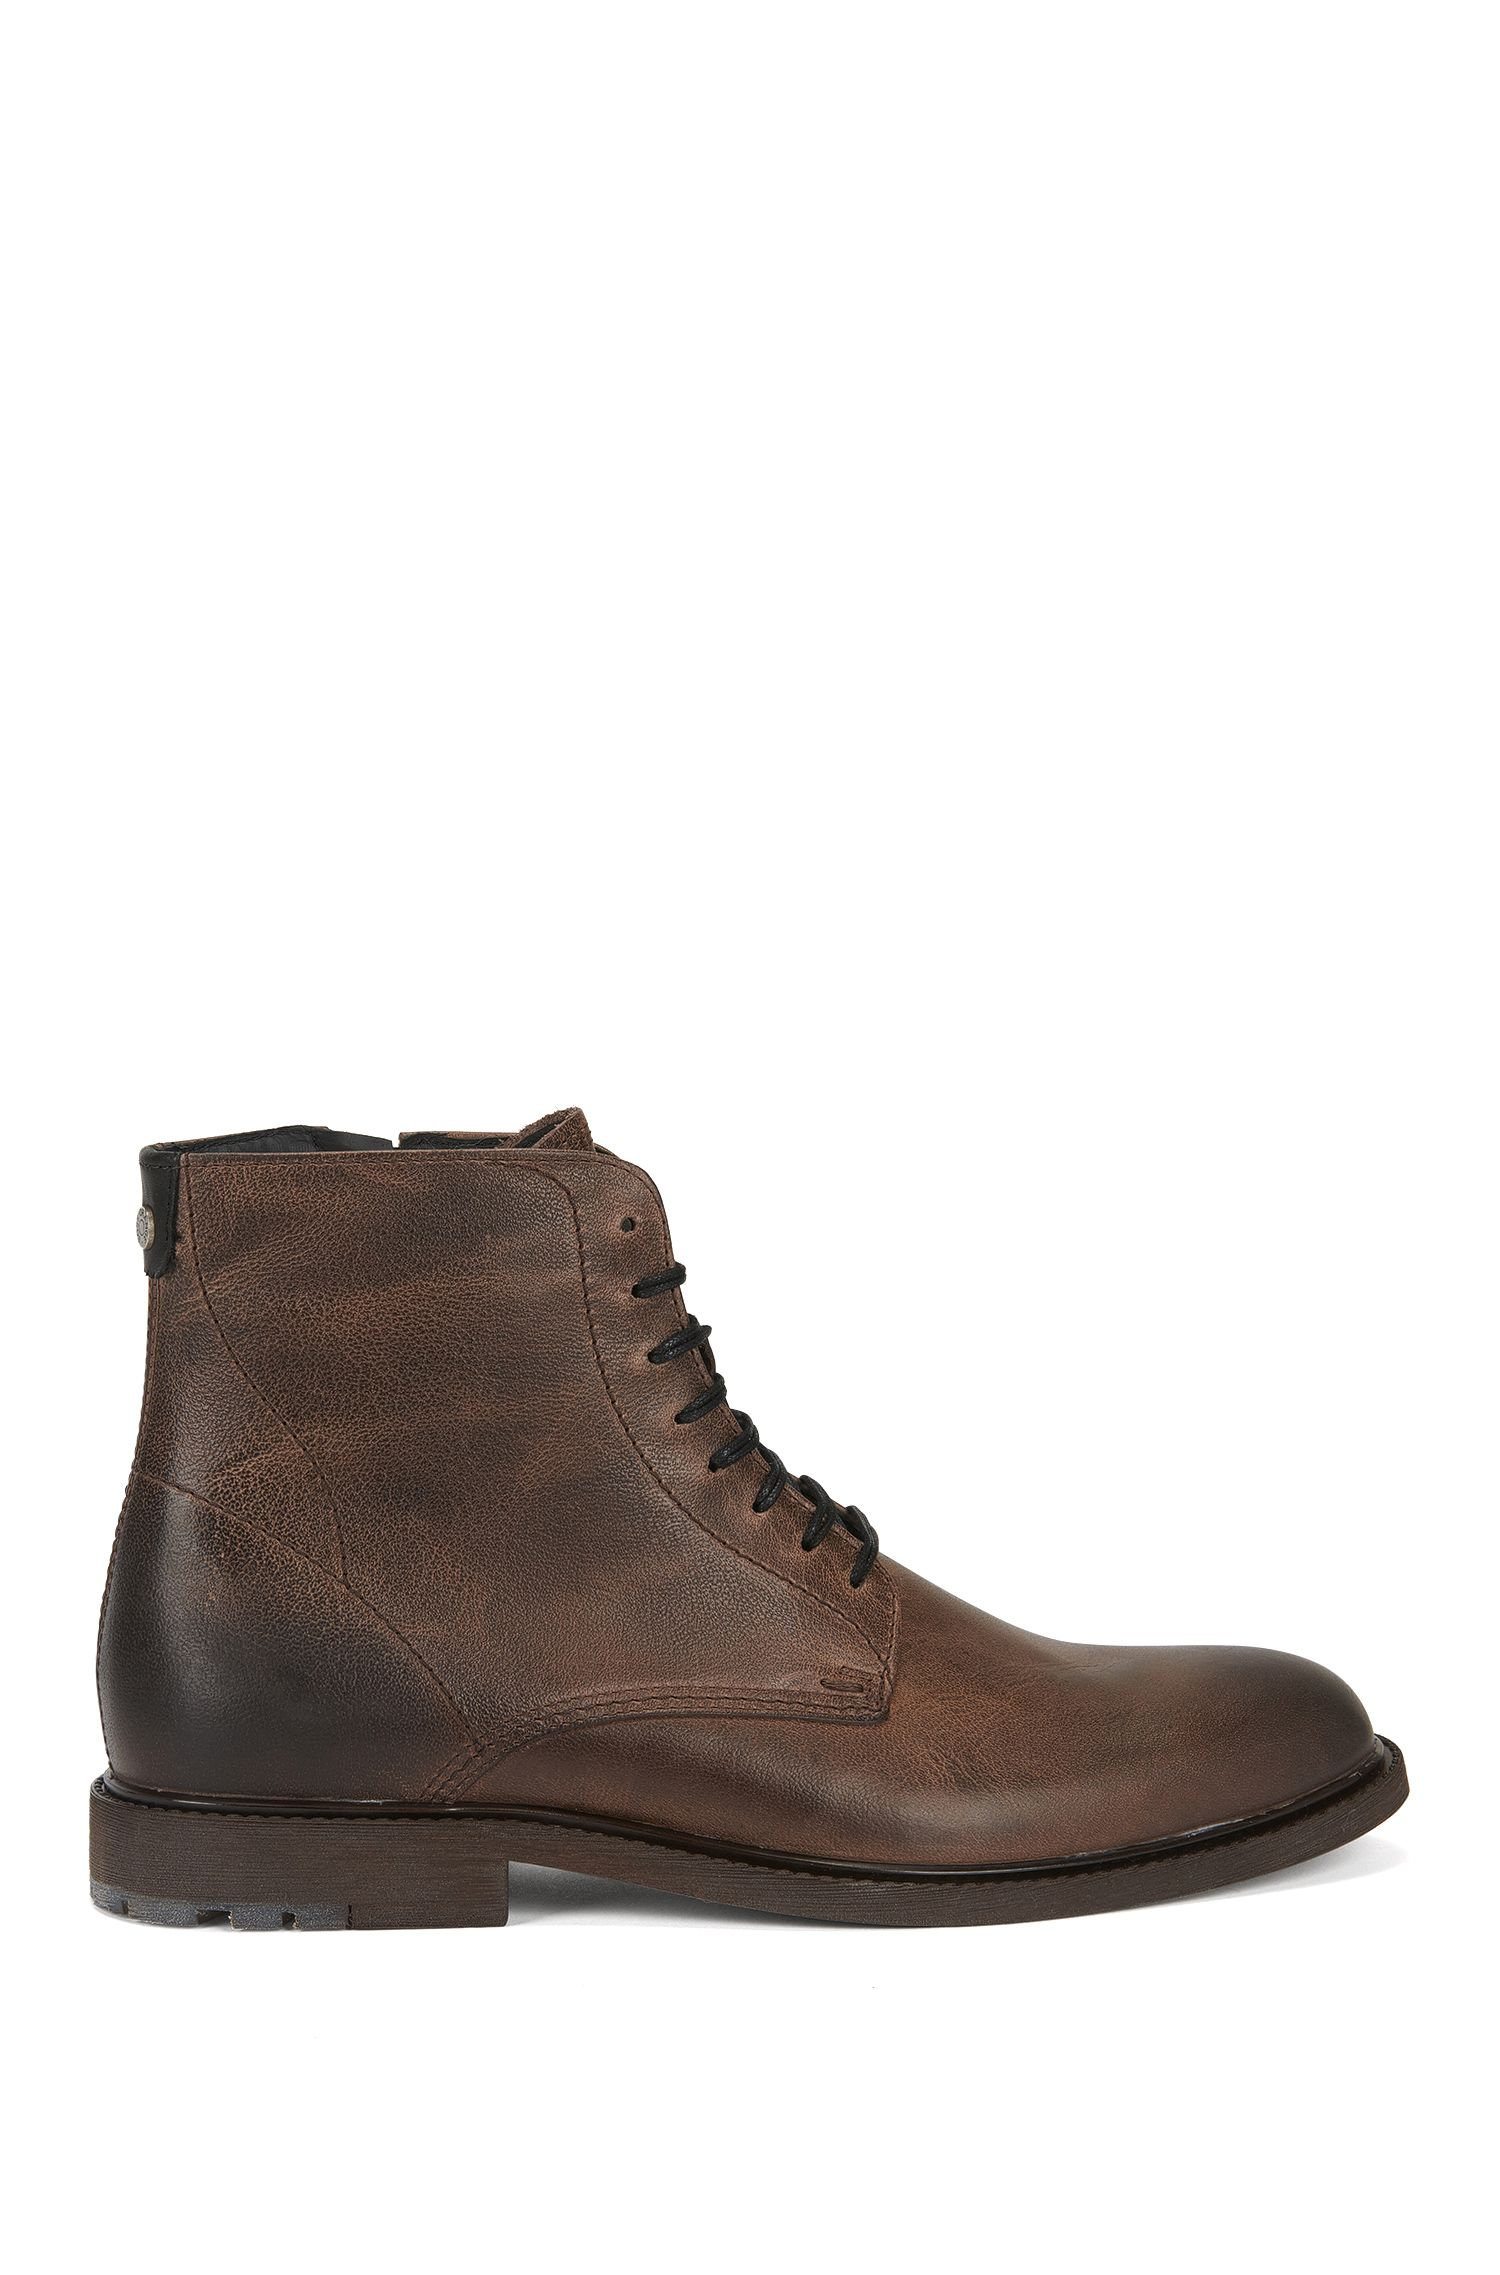 Lace-up half boots in washed leather